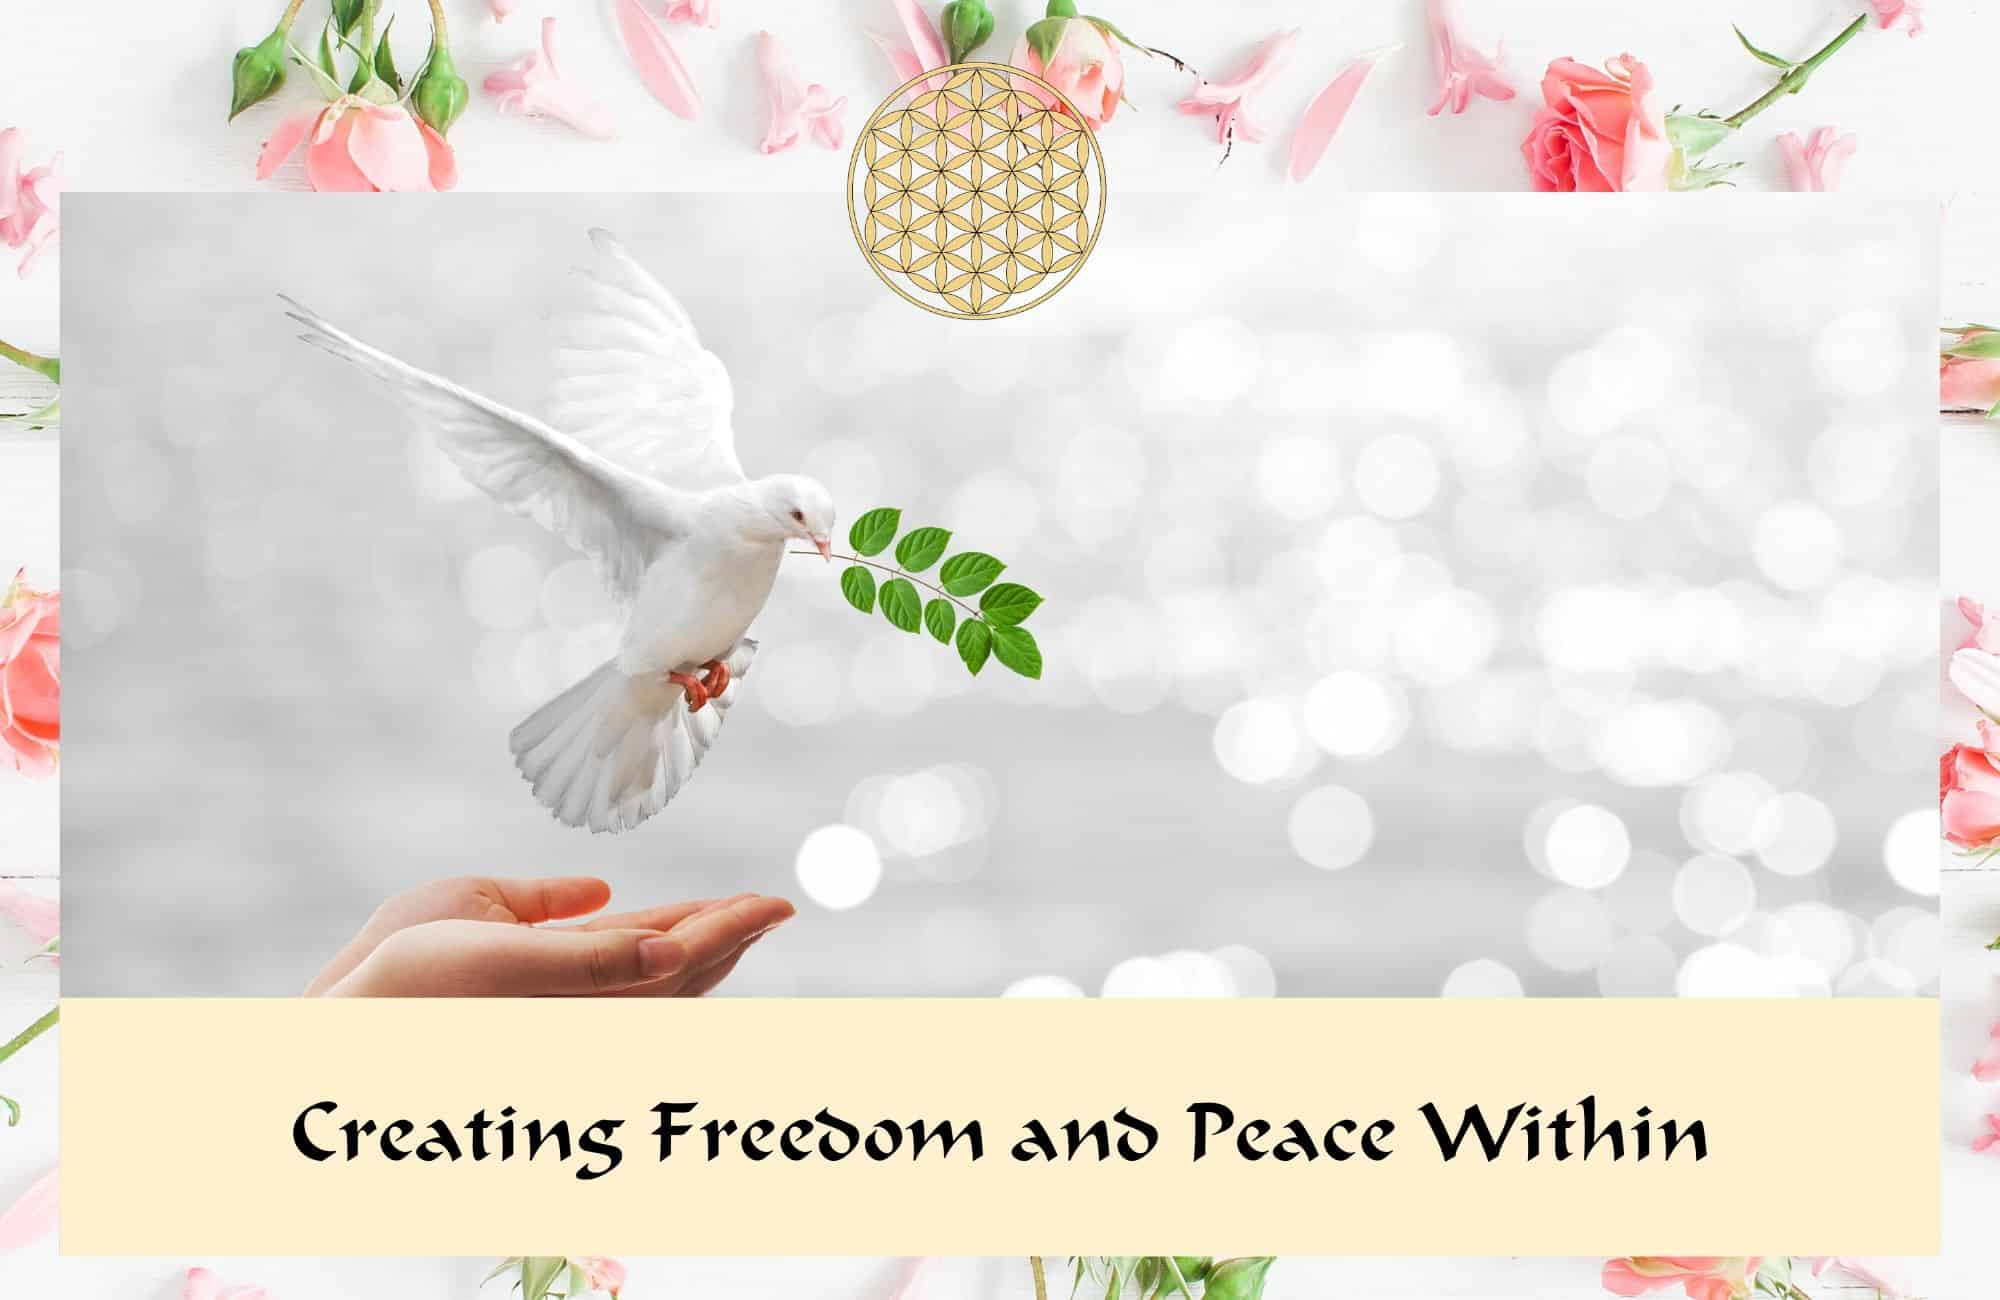 Creating freedom and peace within